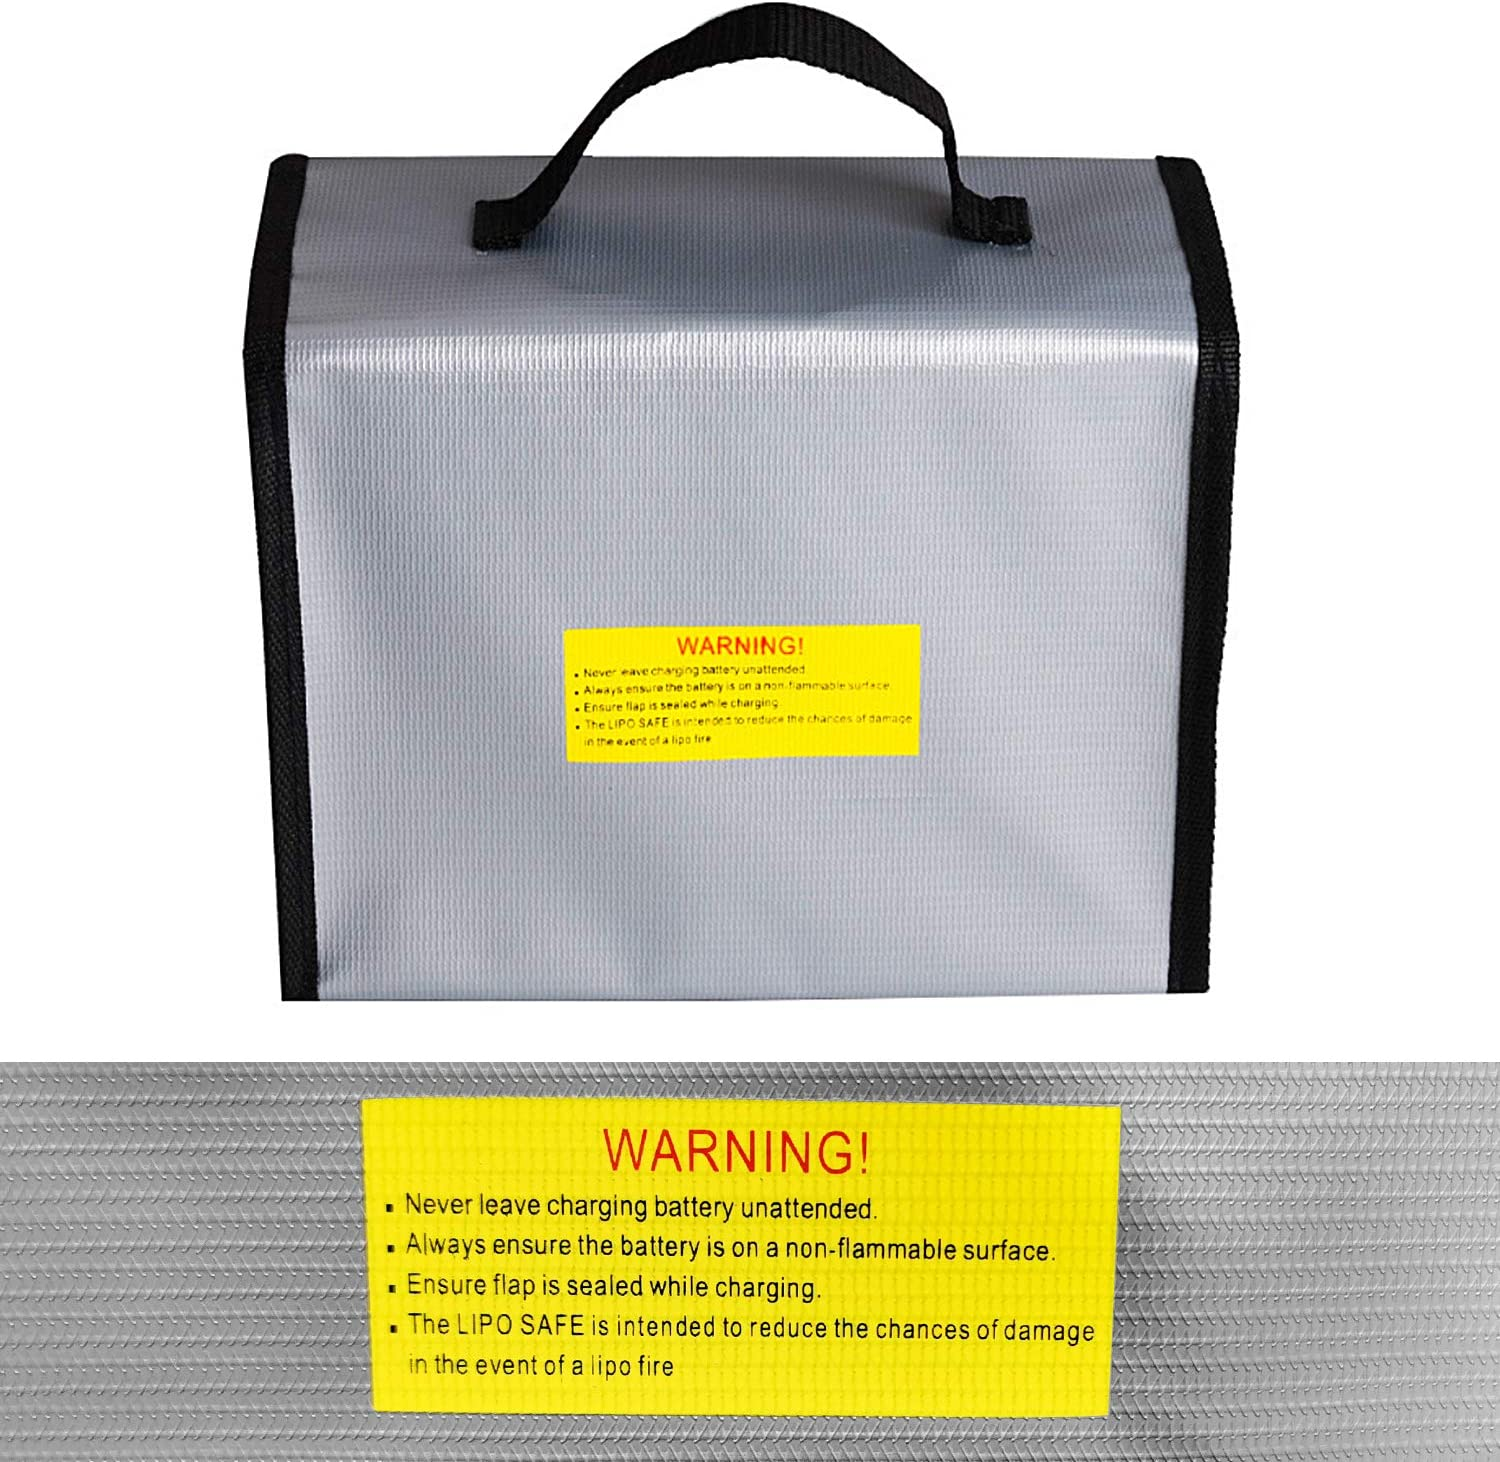 Wandefol Lipo Battery Guard Bag Fireproof Explosionproof Pouch Sack for Charge /& Storage with Handle 215x155x115mm